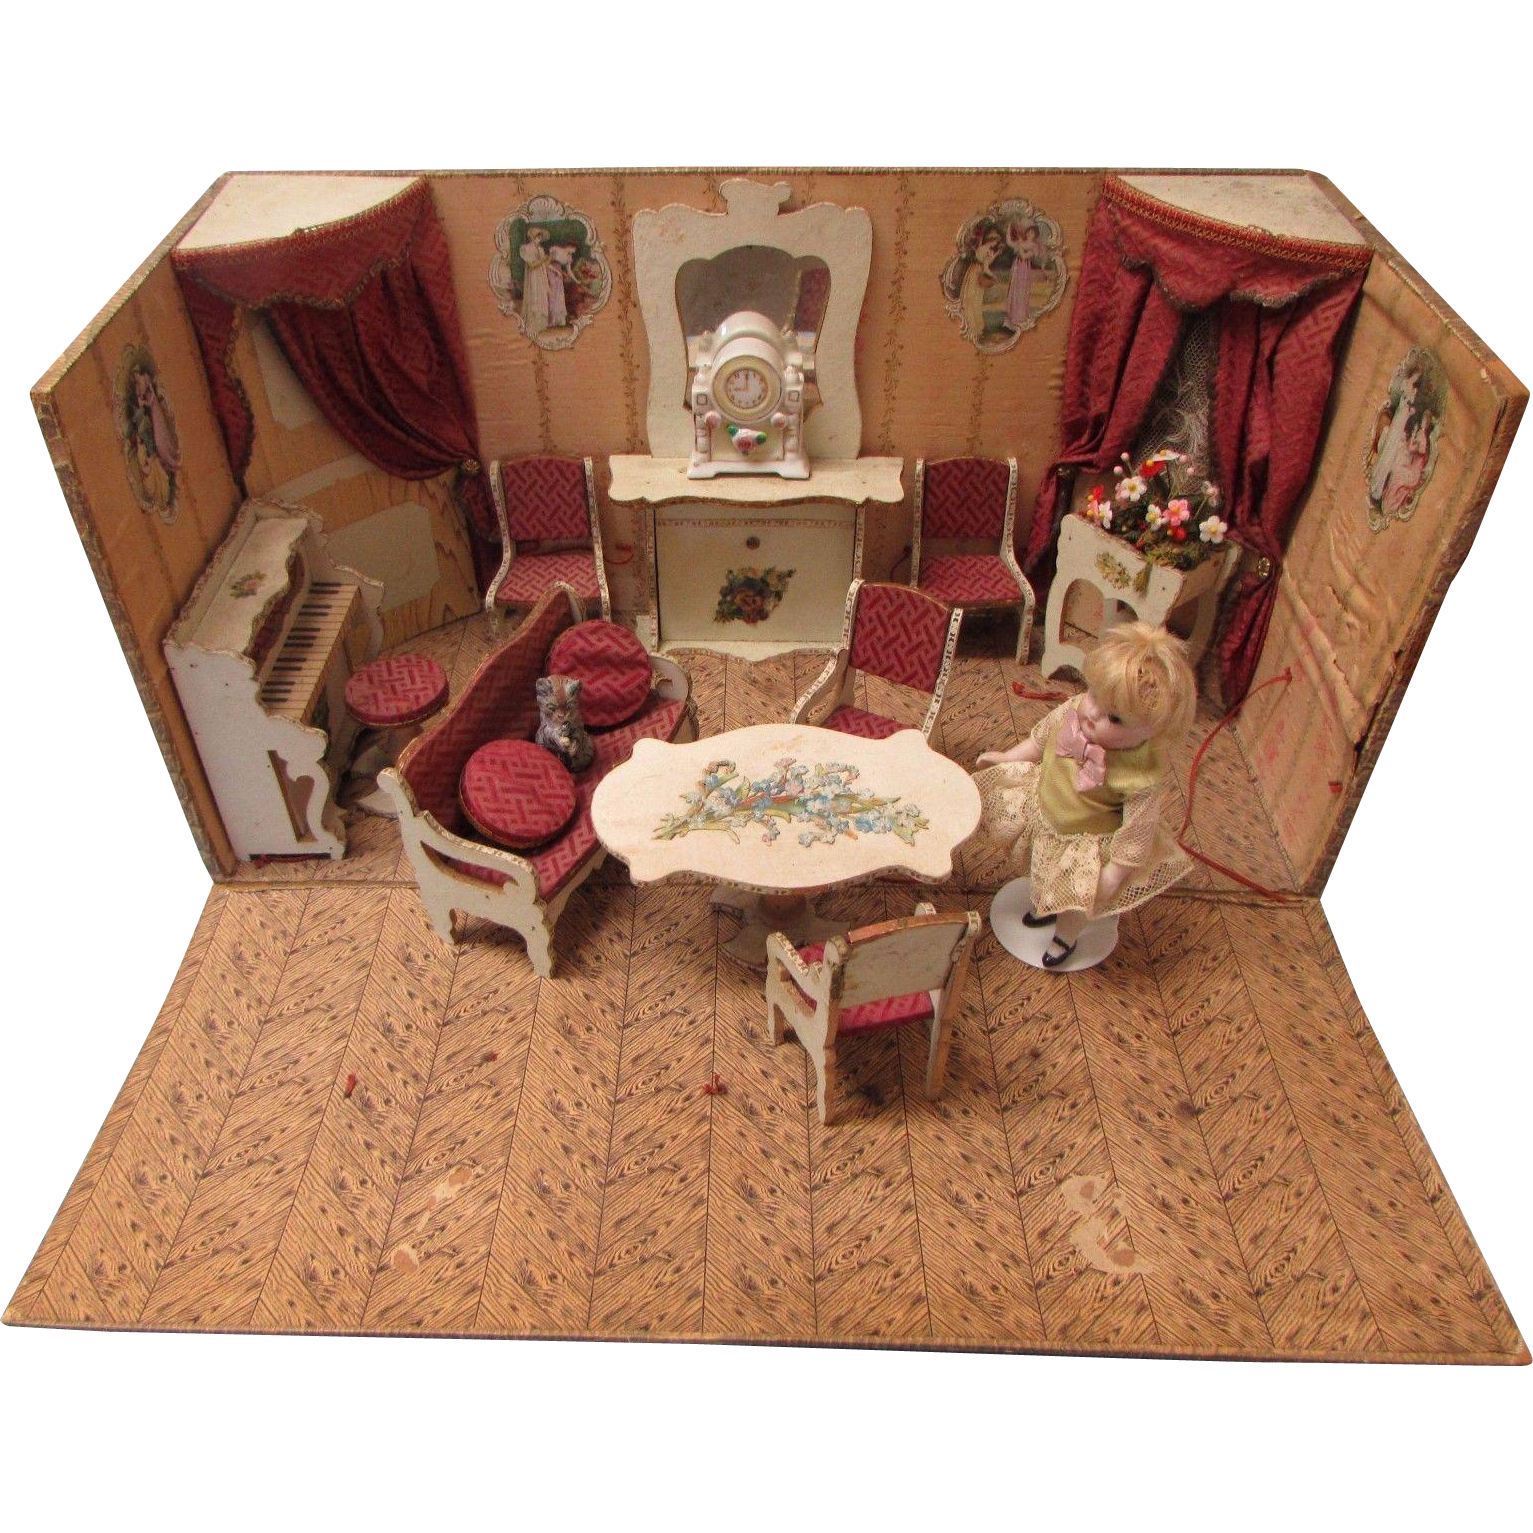 Antique French Miniature Dollhouse burgundy Parlor Furnishings